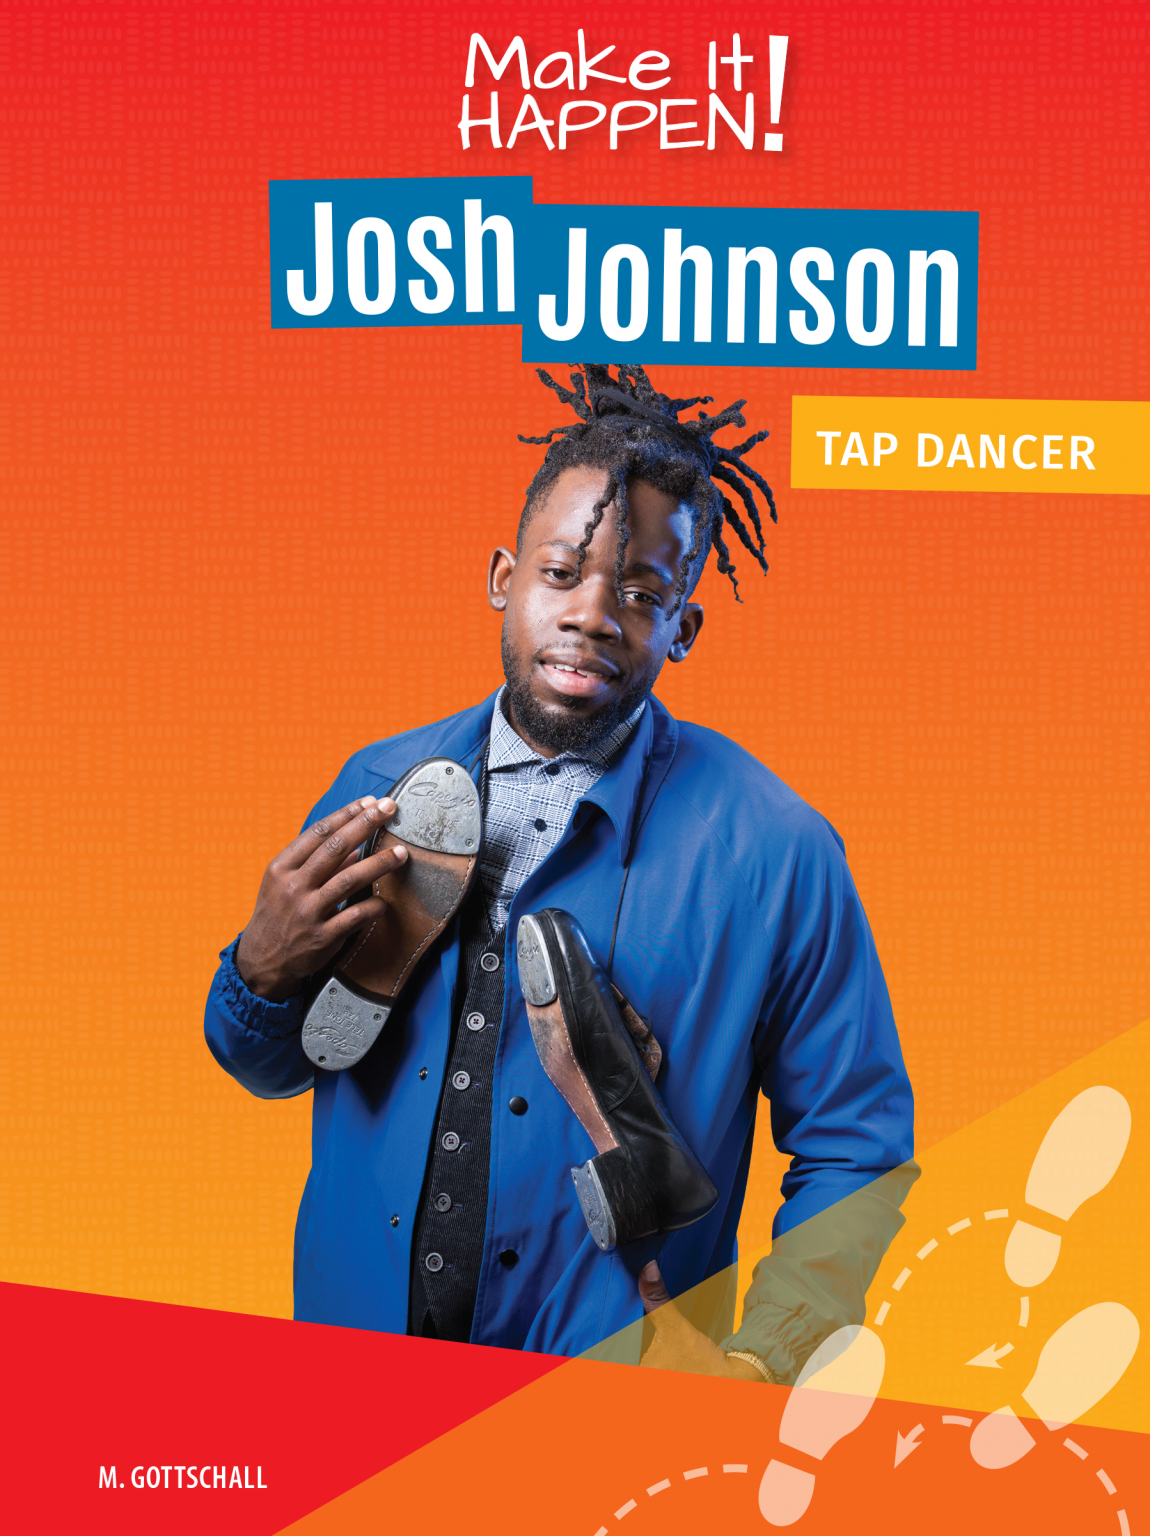 josh-johnson_covercropped.png